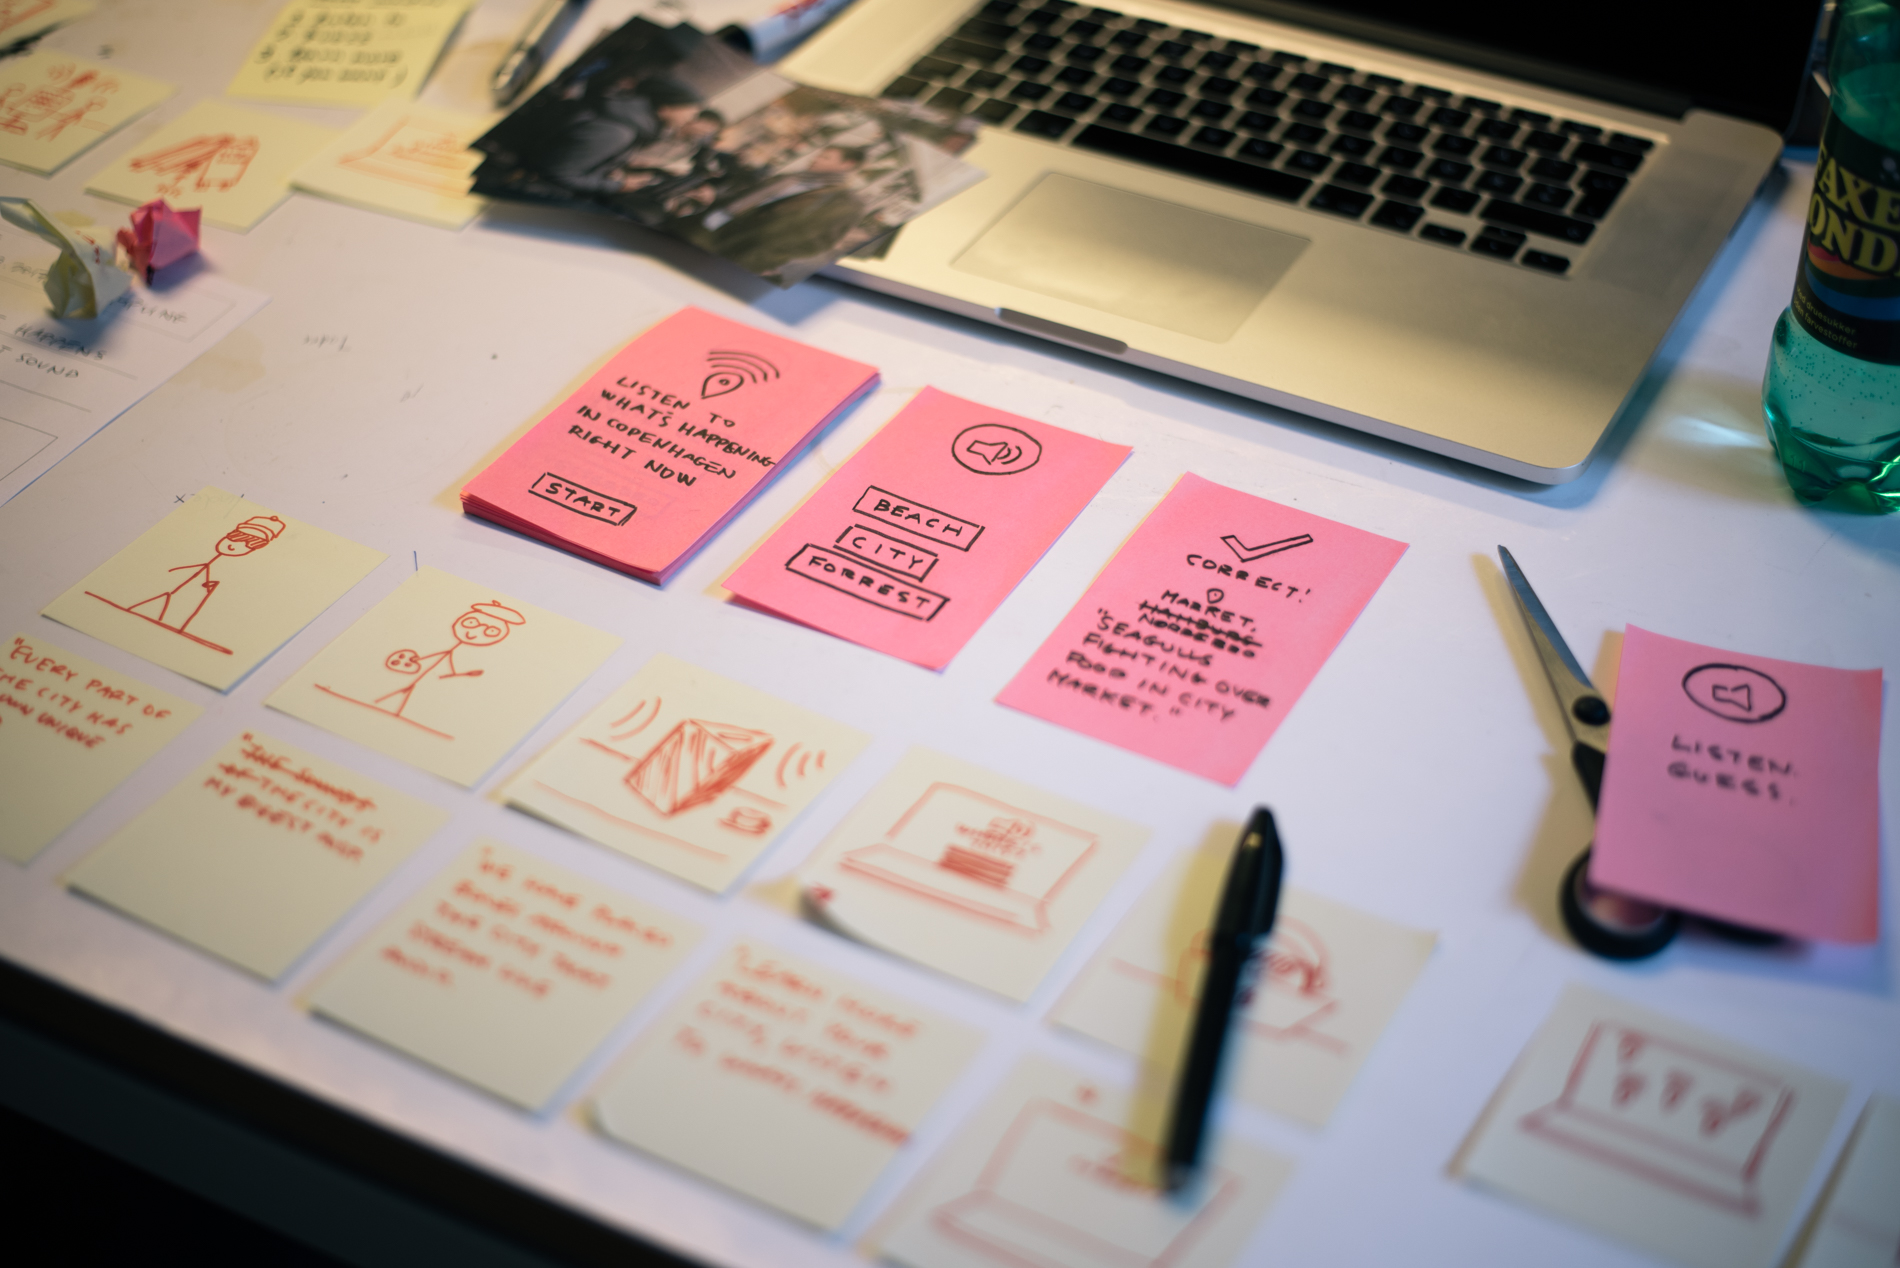 First prototype: App flow sketched on post-its